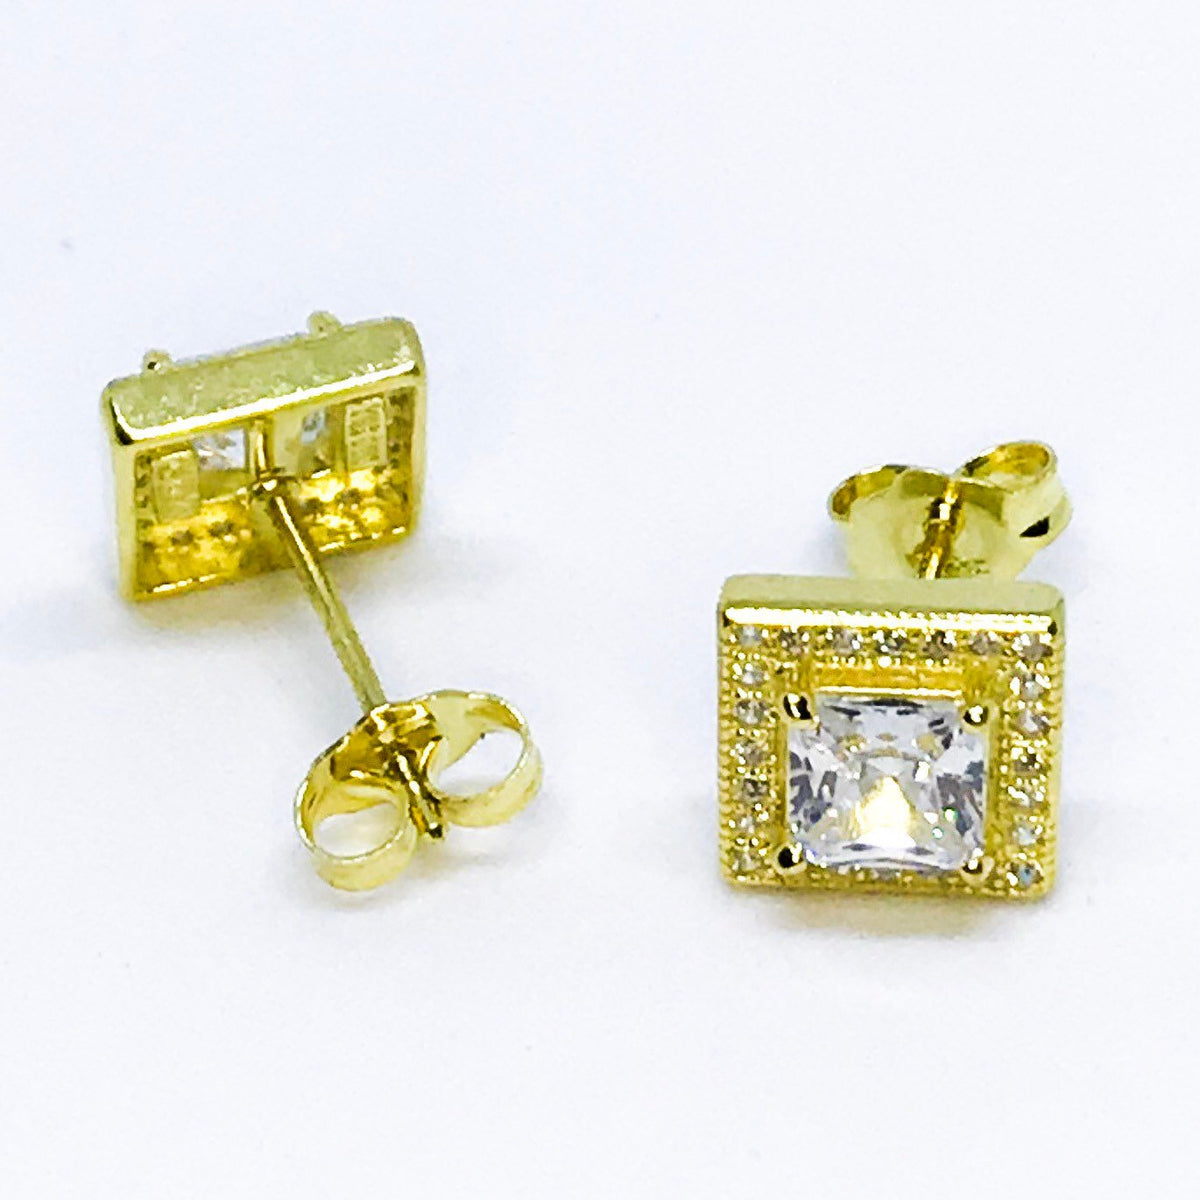 14k Yellow Gold Layered on Sterling Silver Square Earrings - 3 Royal Dazzy